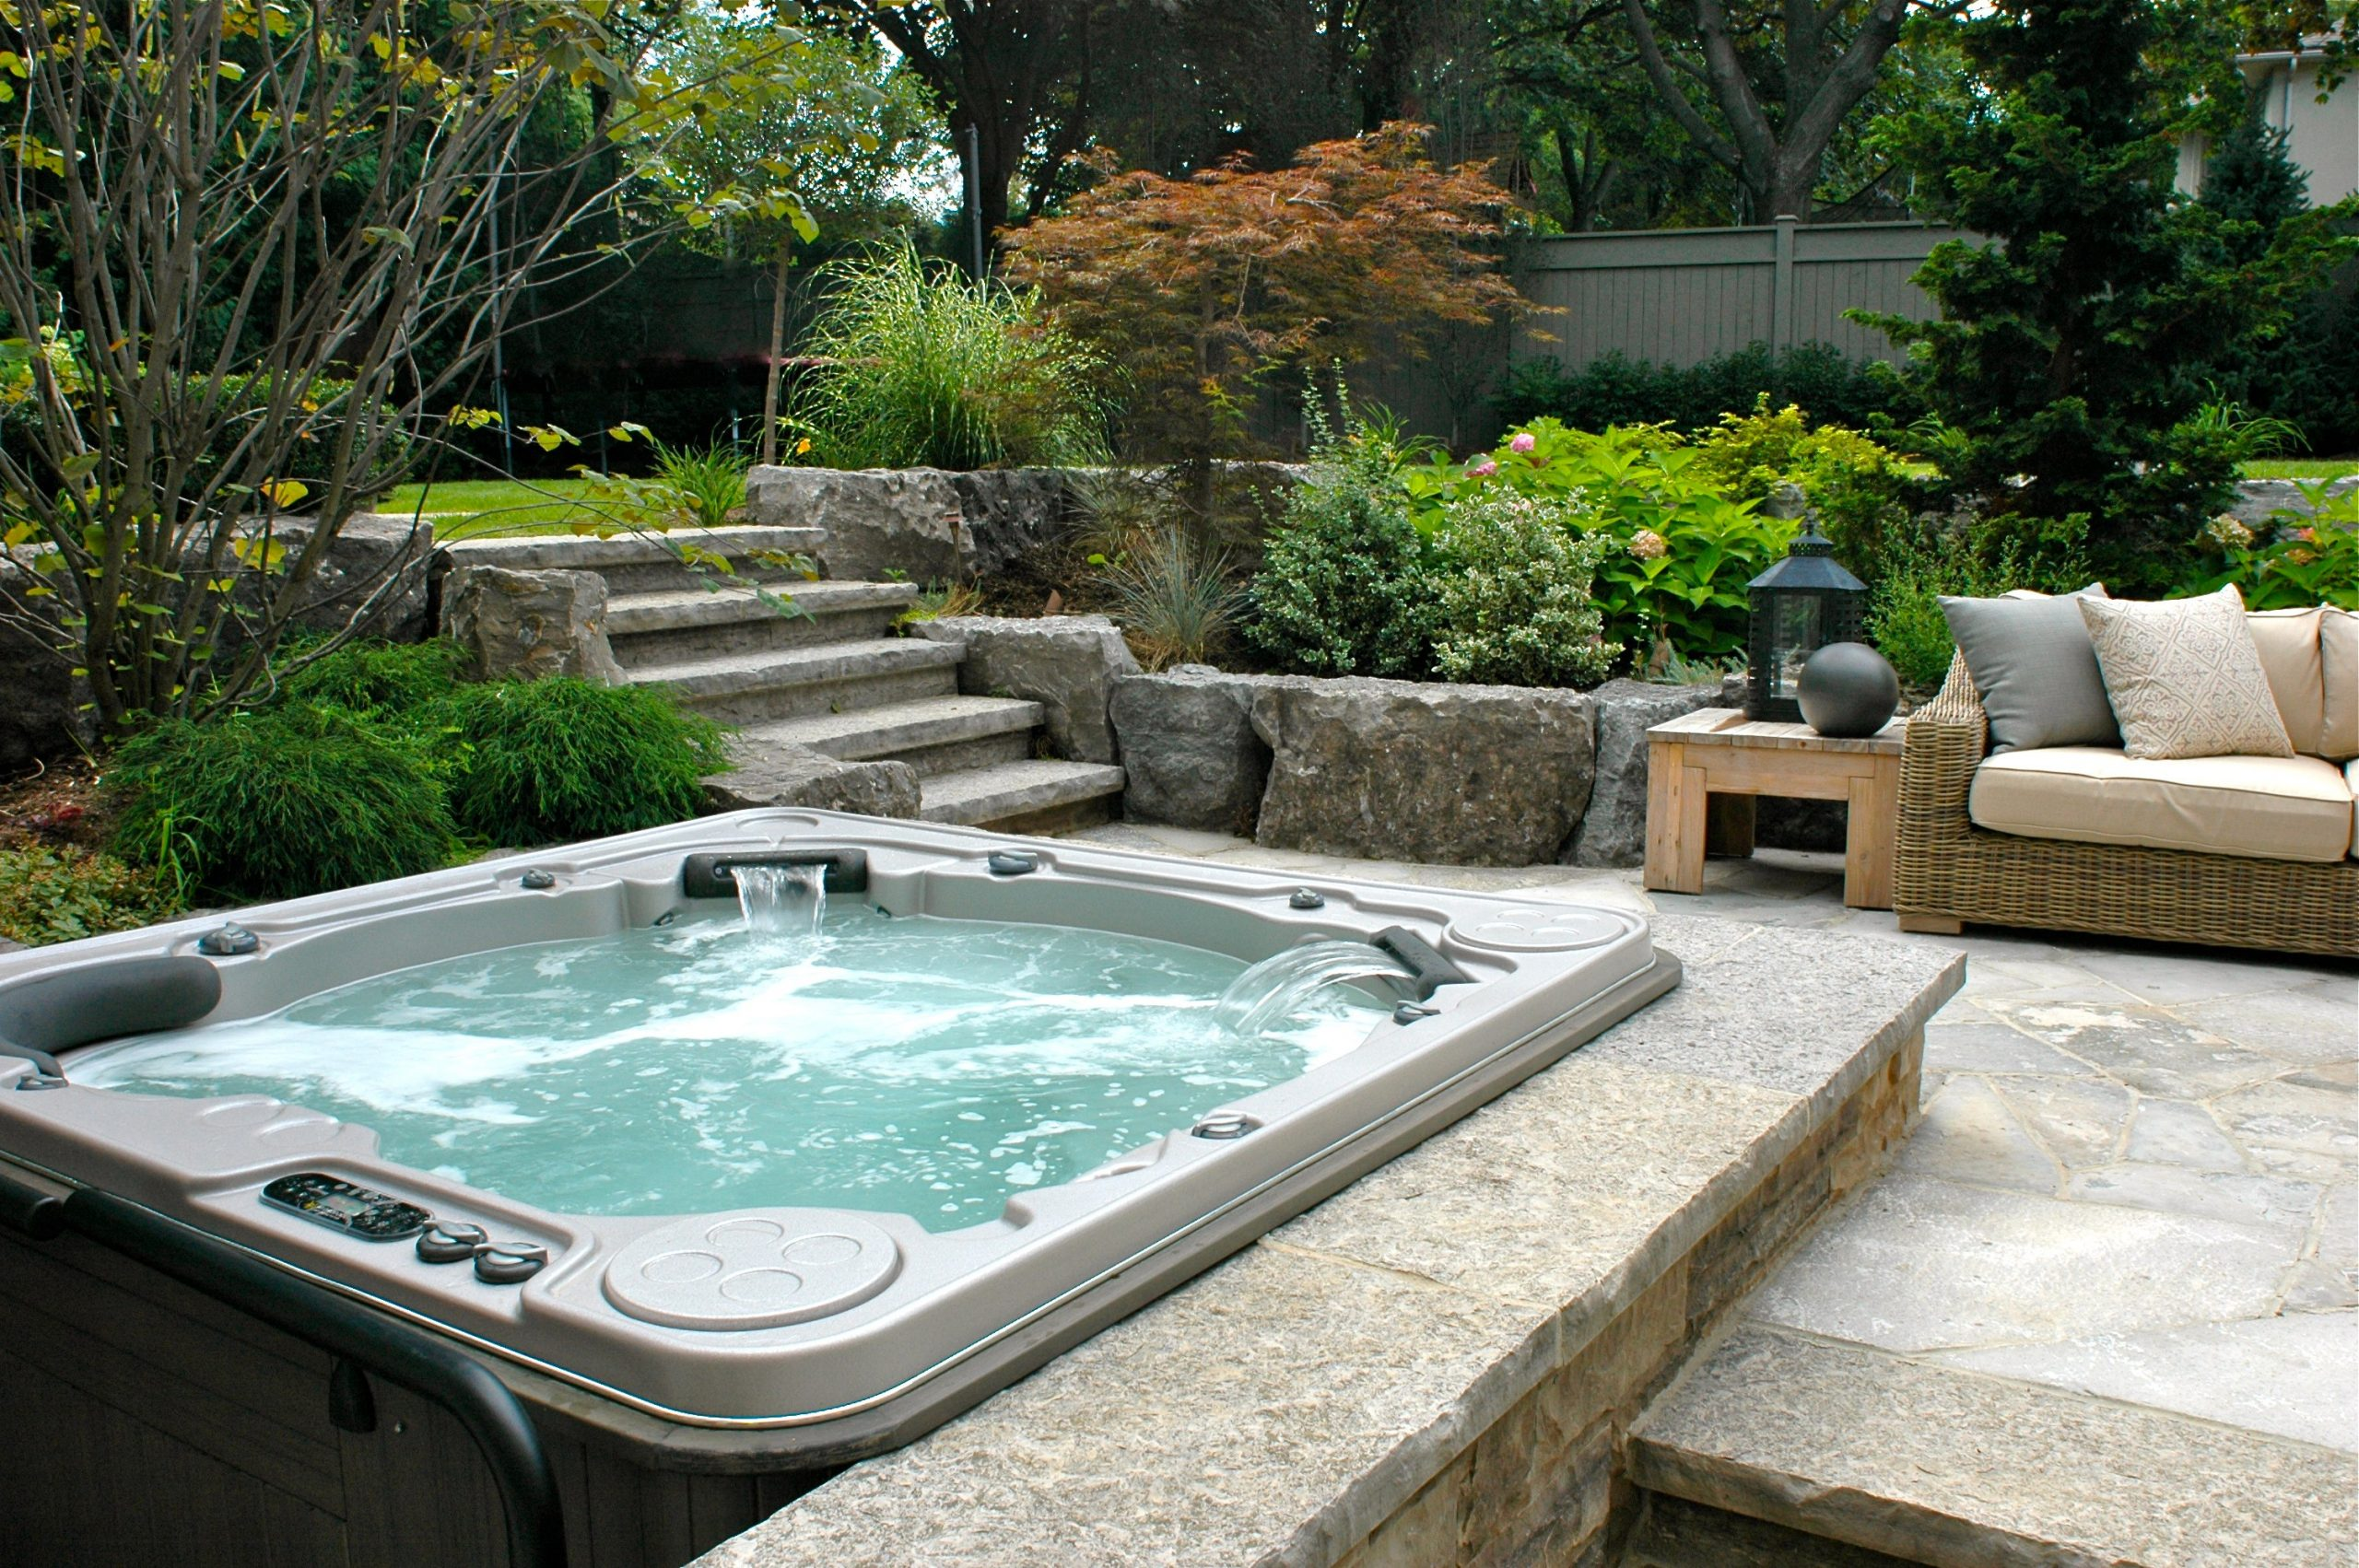 Hot Tub with Landscaping